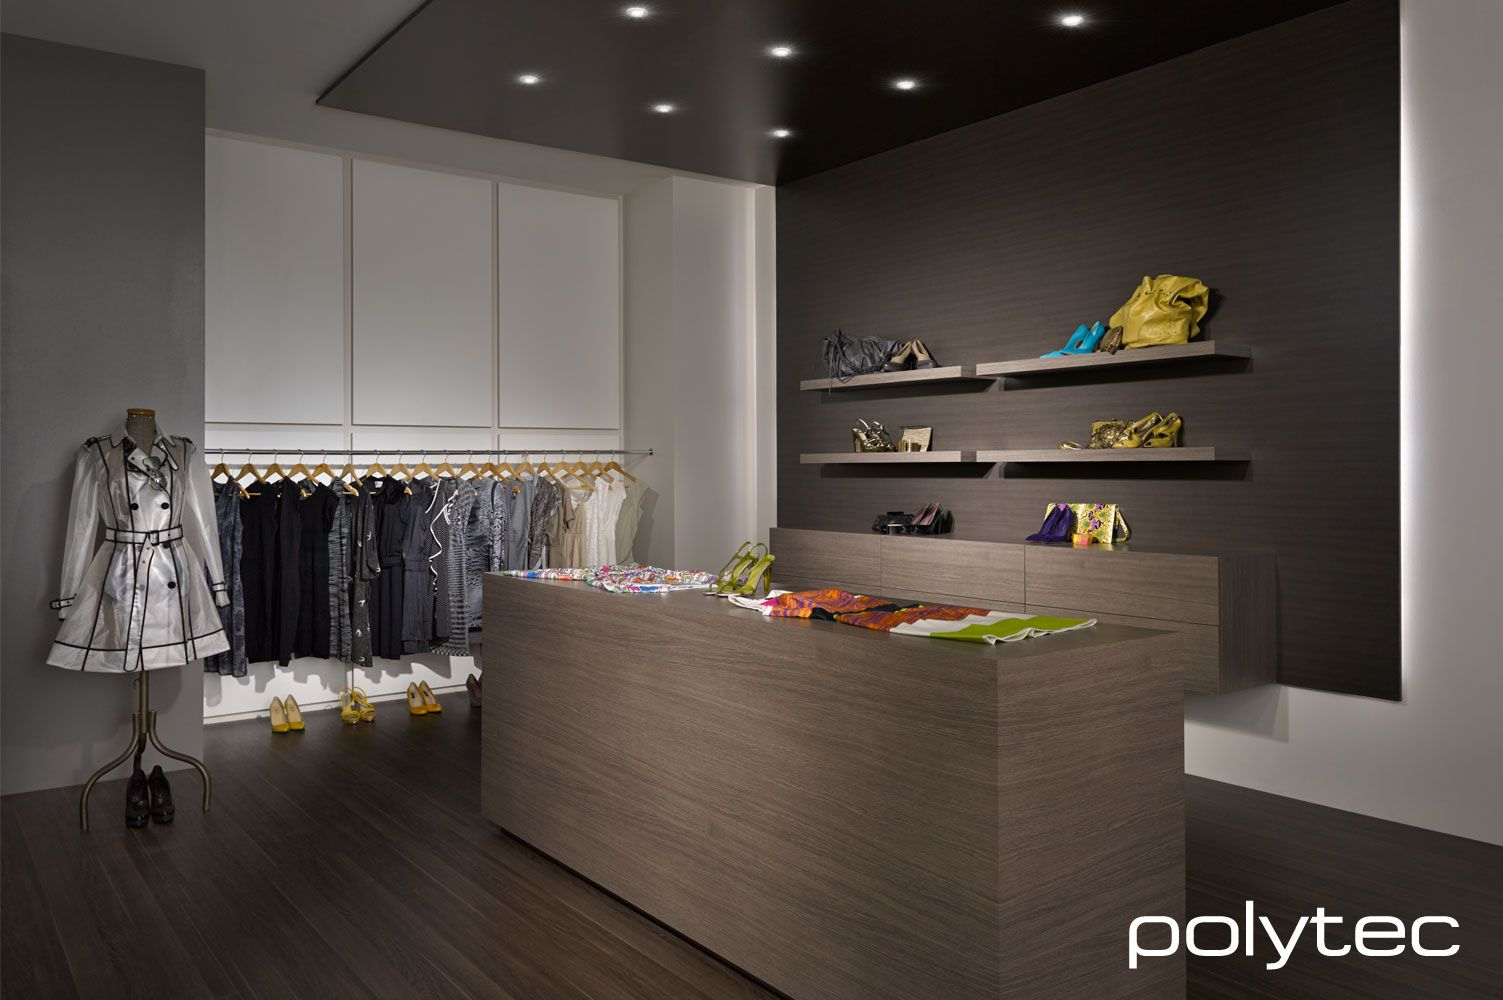 Polytec Counter Drawers And Shelving In Laminate